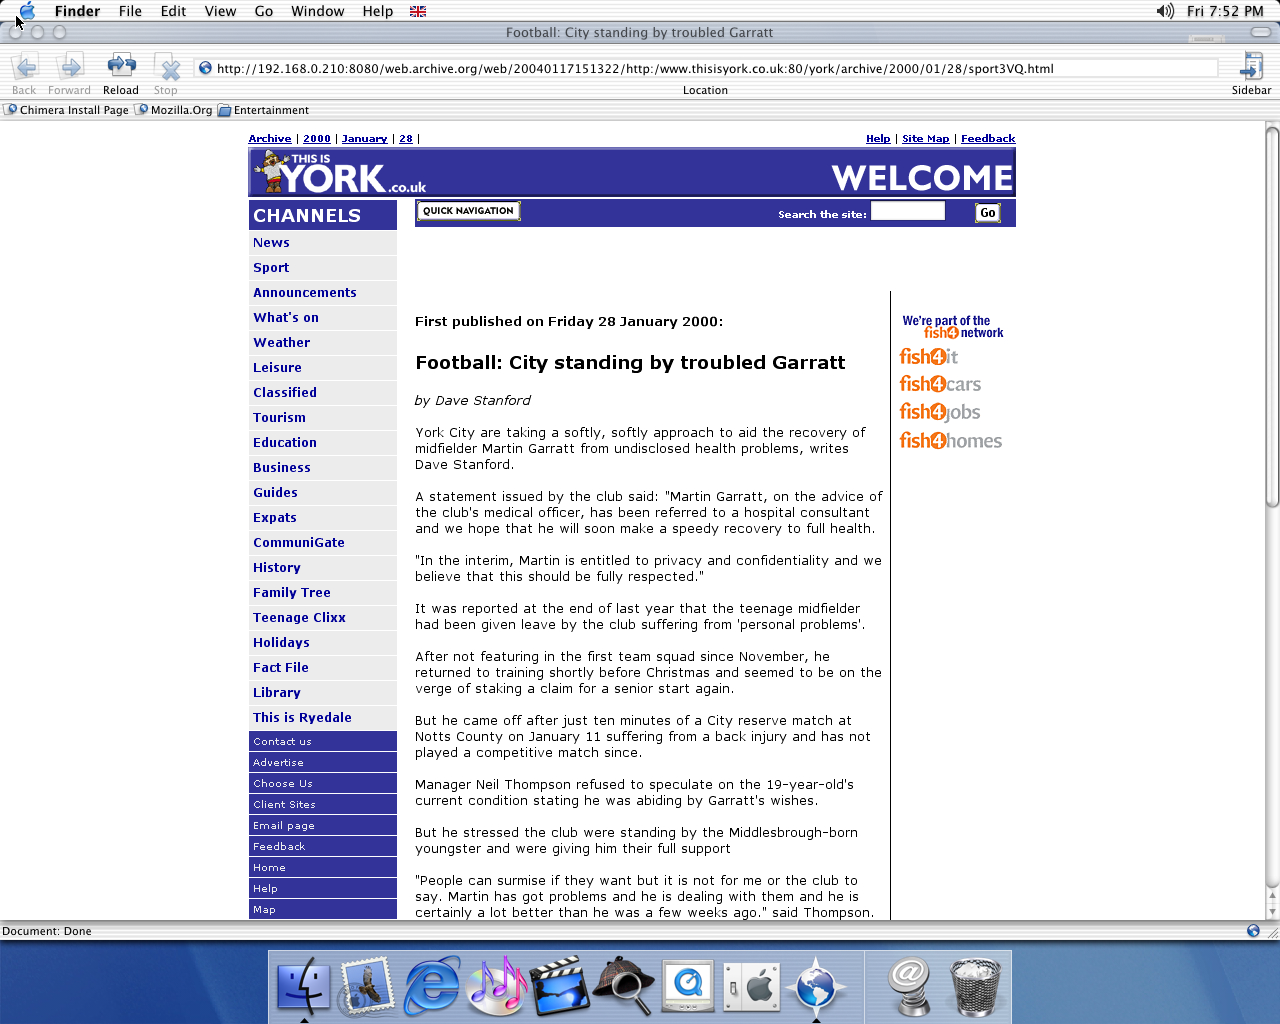 OS X 10.1 PPC with Chimera 0.6 displaying a page from York Press archived at January 17, 2004 at 15:13:22